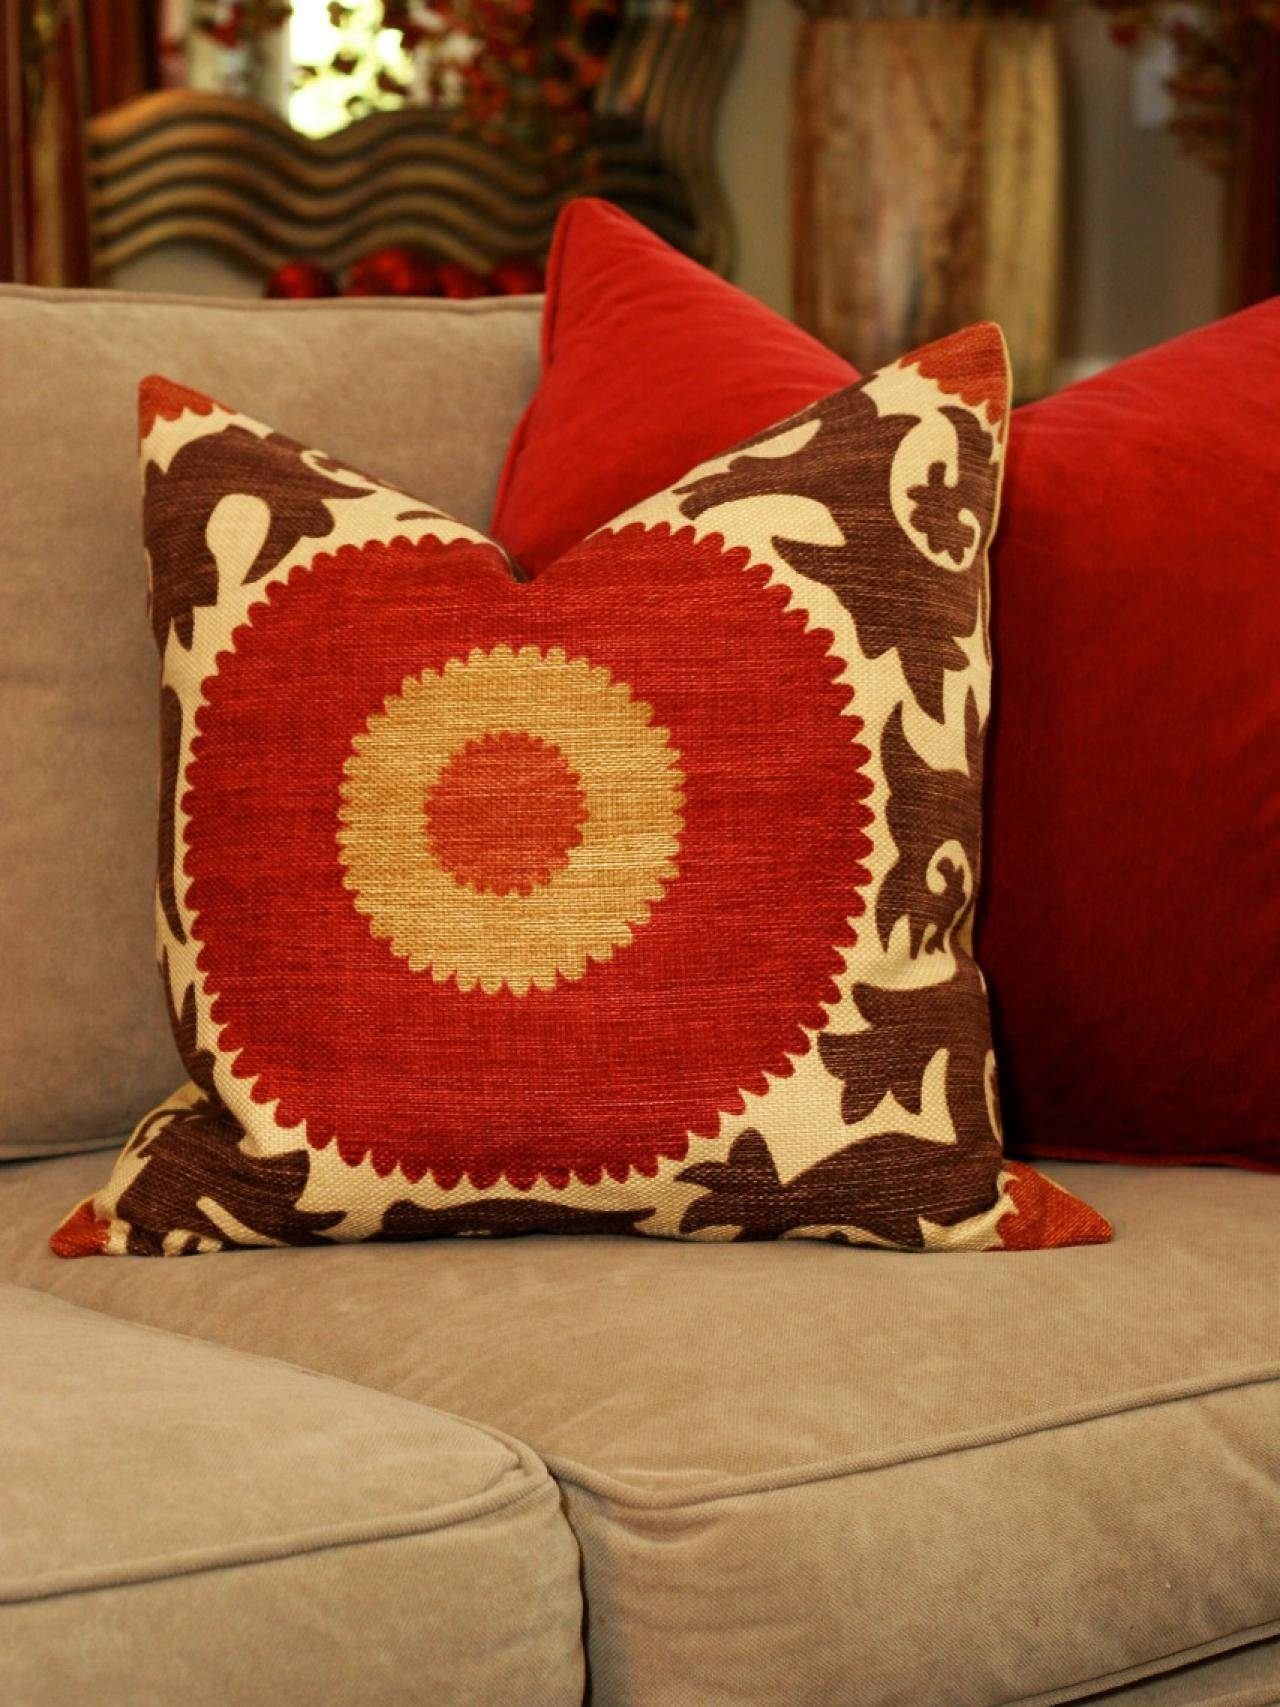 Get expert tips on selecting and decorating with throw pillows. Explore Photos of Red Sofa Throws (Showing 7 of 25 Photos)